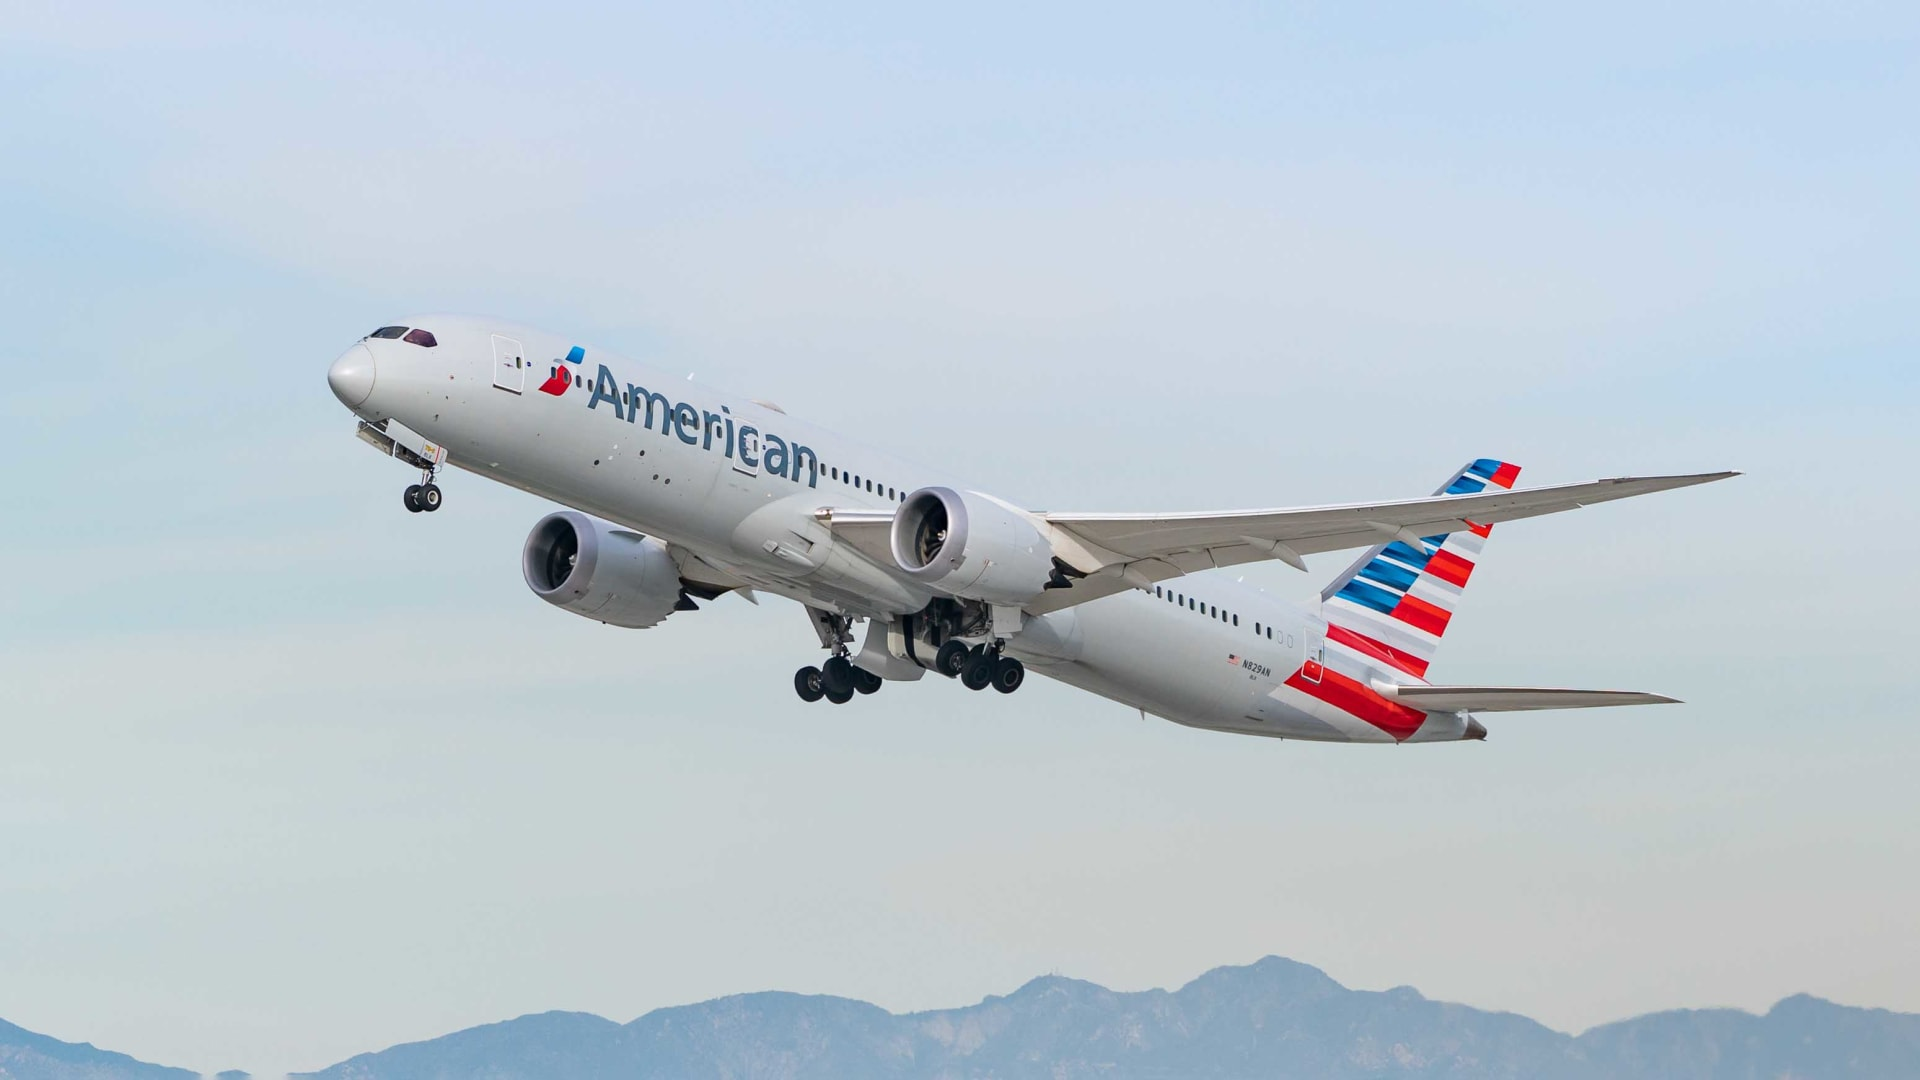 American Airlines Just Made a Big Announcement. There's Only 1 Problem